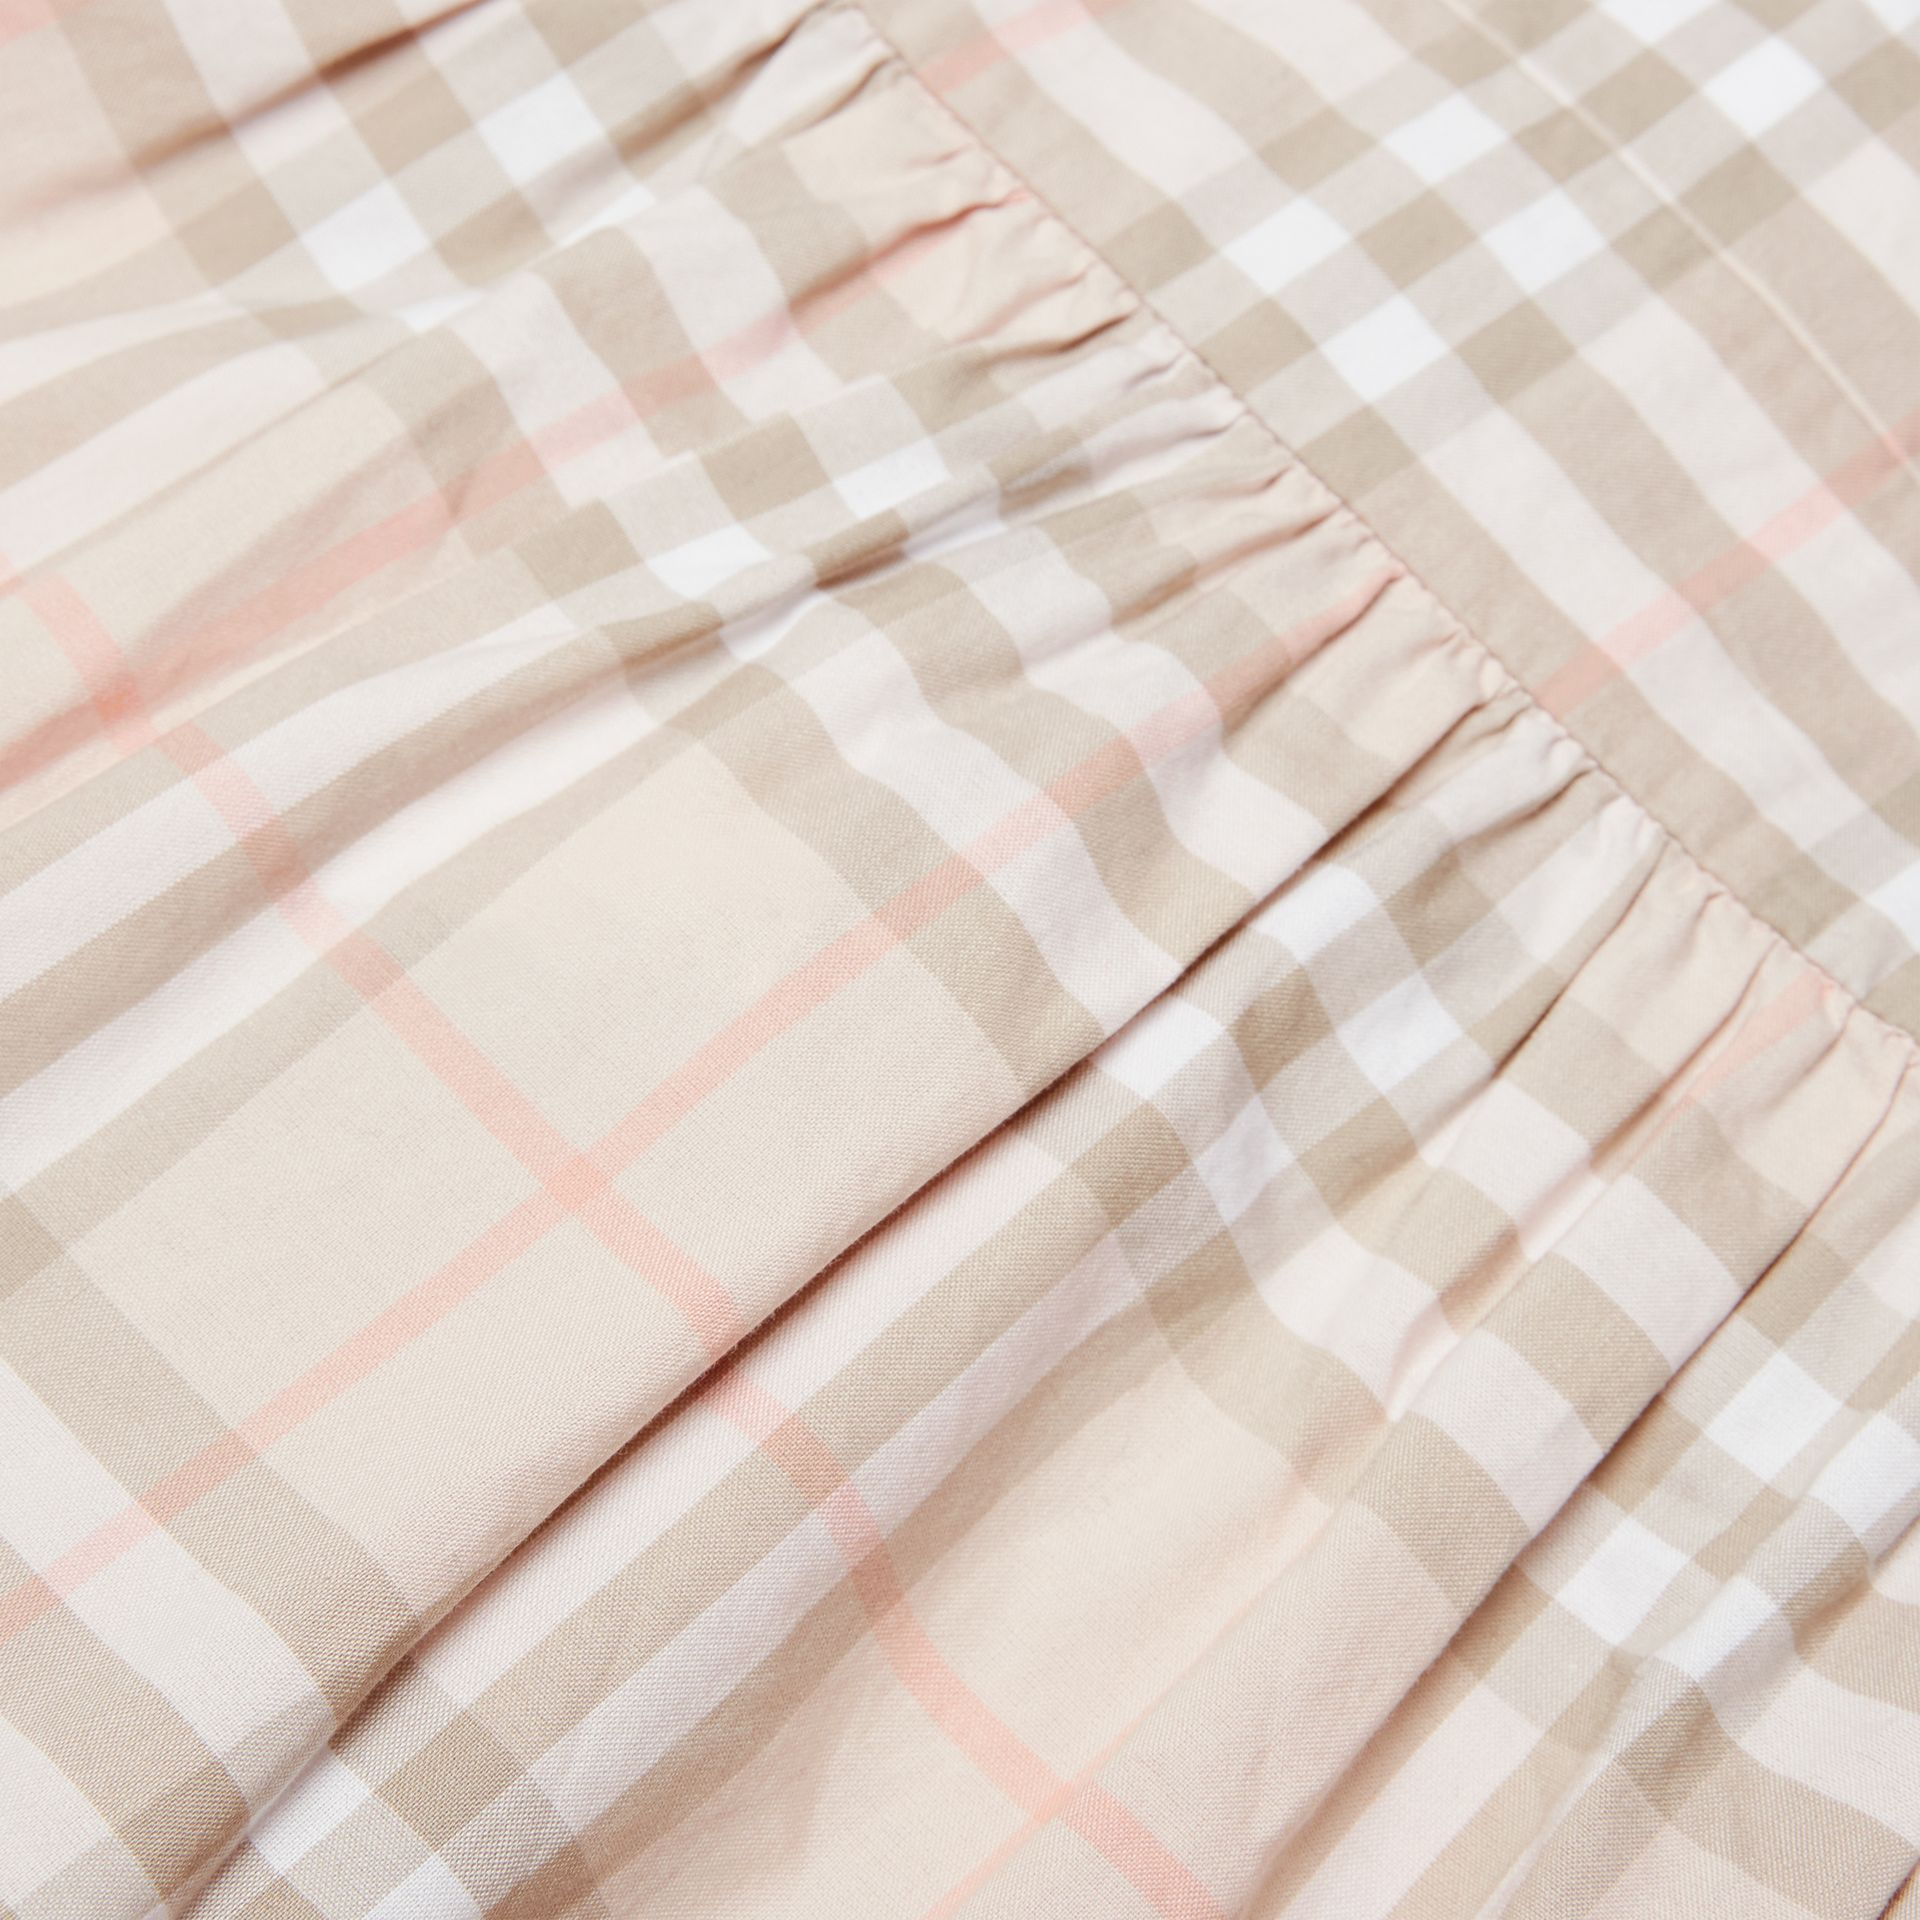 Ruffle Detail Check Cotton Dress in Pale Pink Apricot | Burberry Australia - gallery image 1